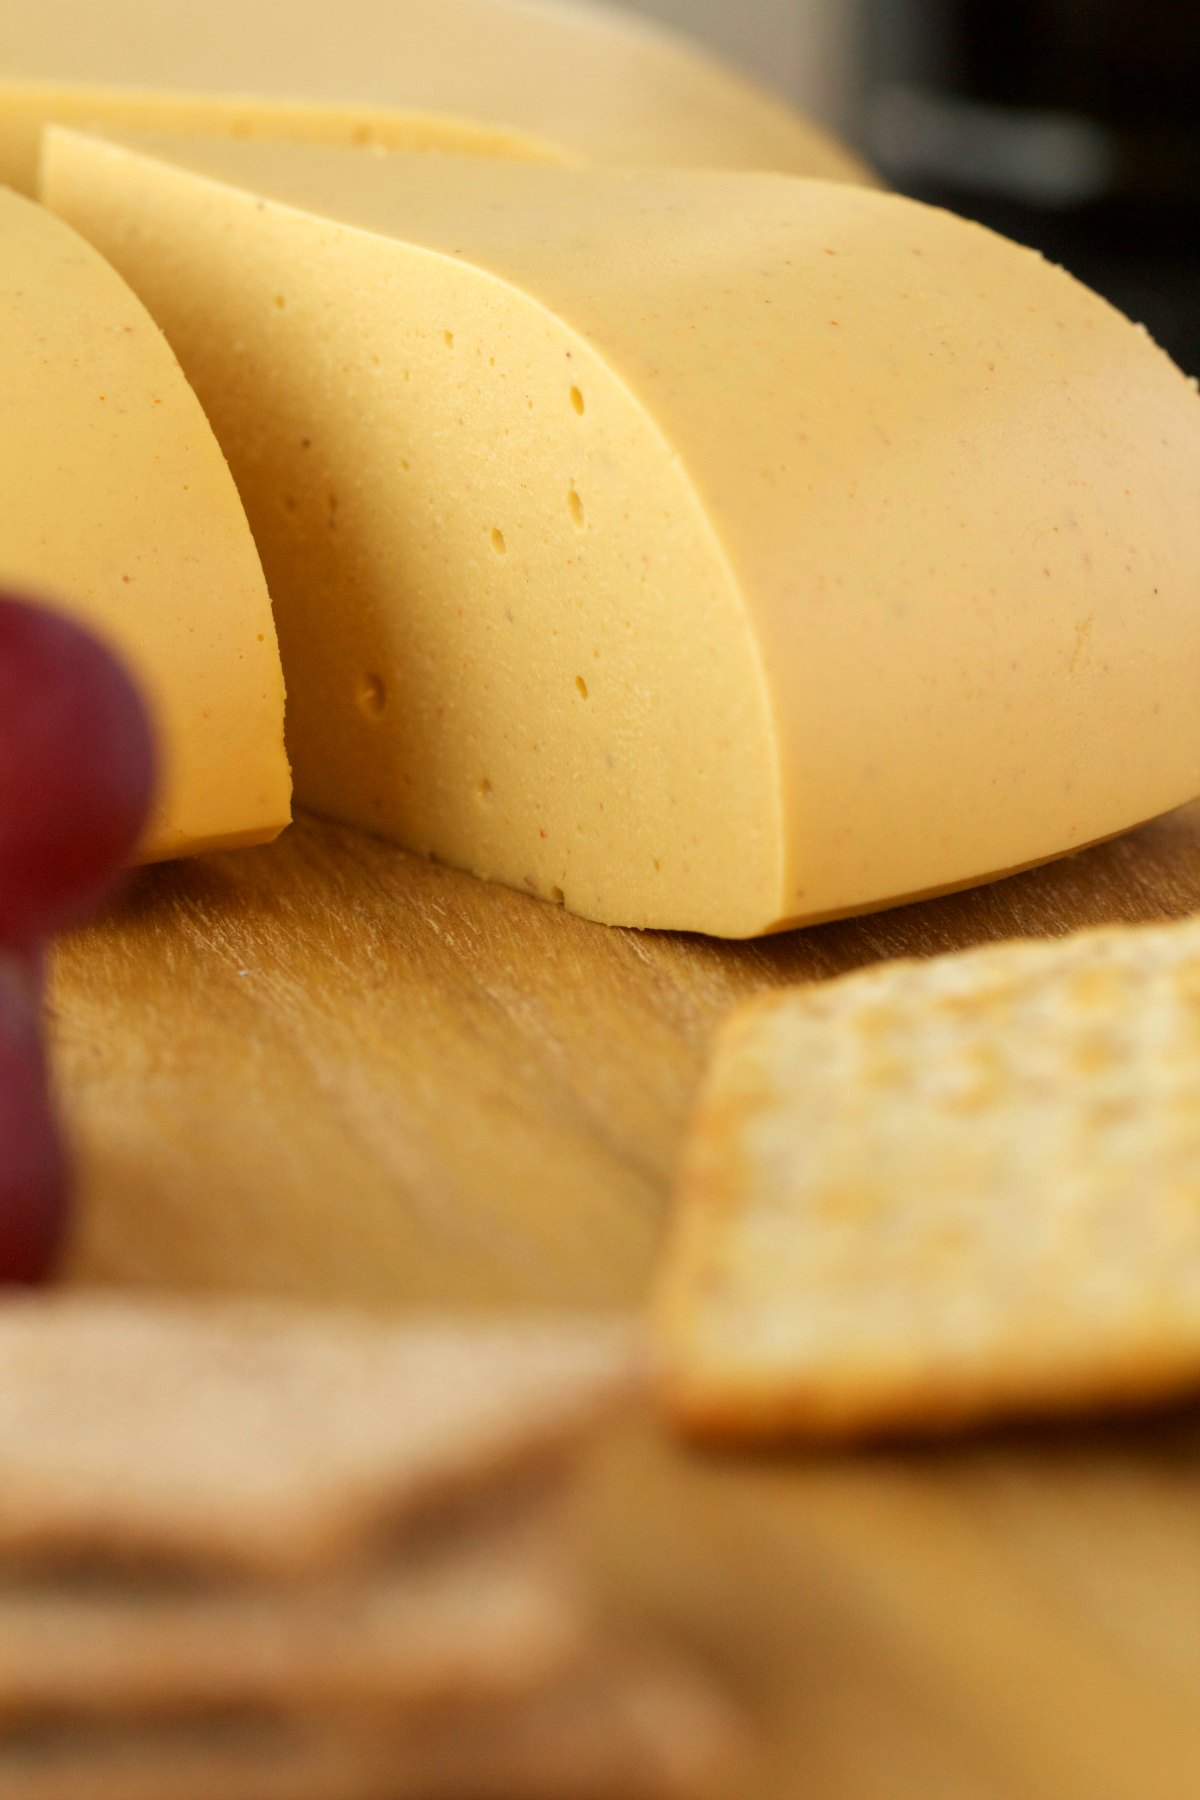 Sliced wheel of cashew cheese on a cheese board with crackers and grapes.